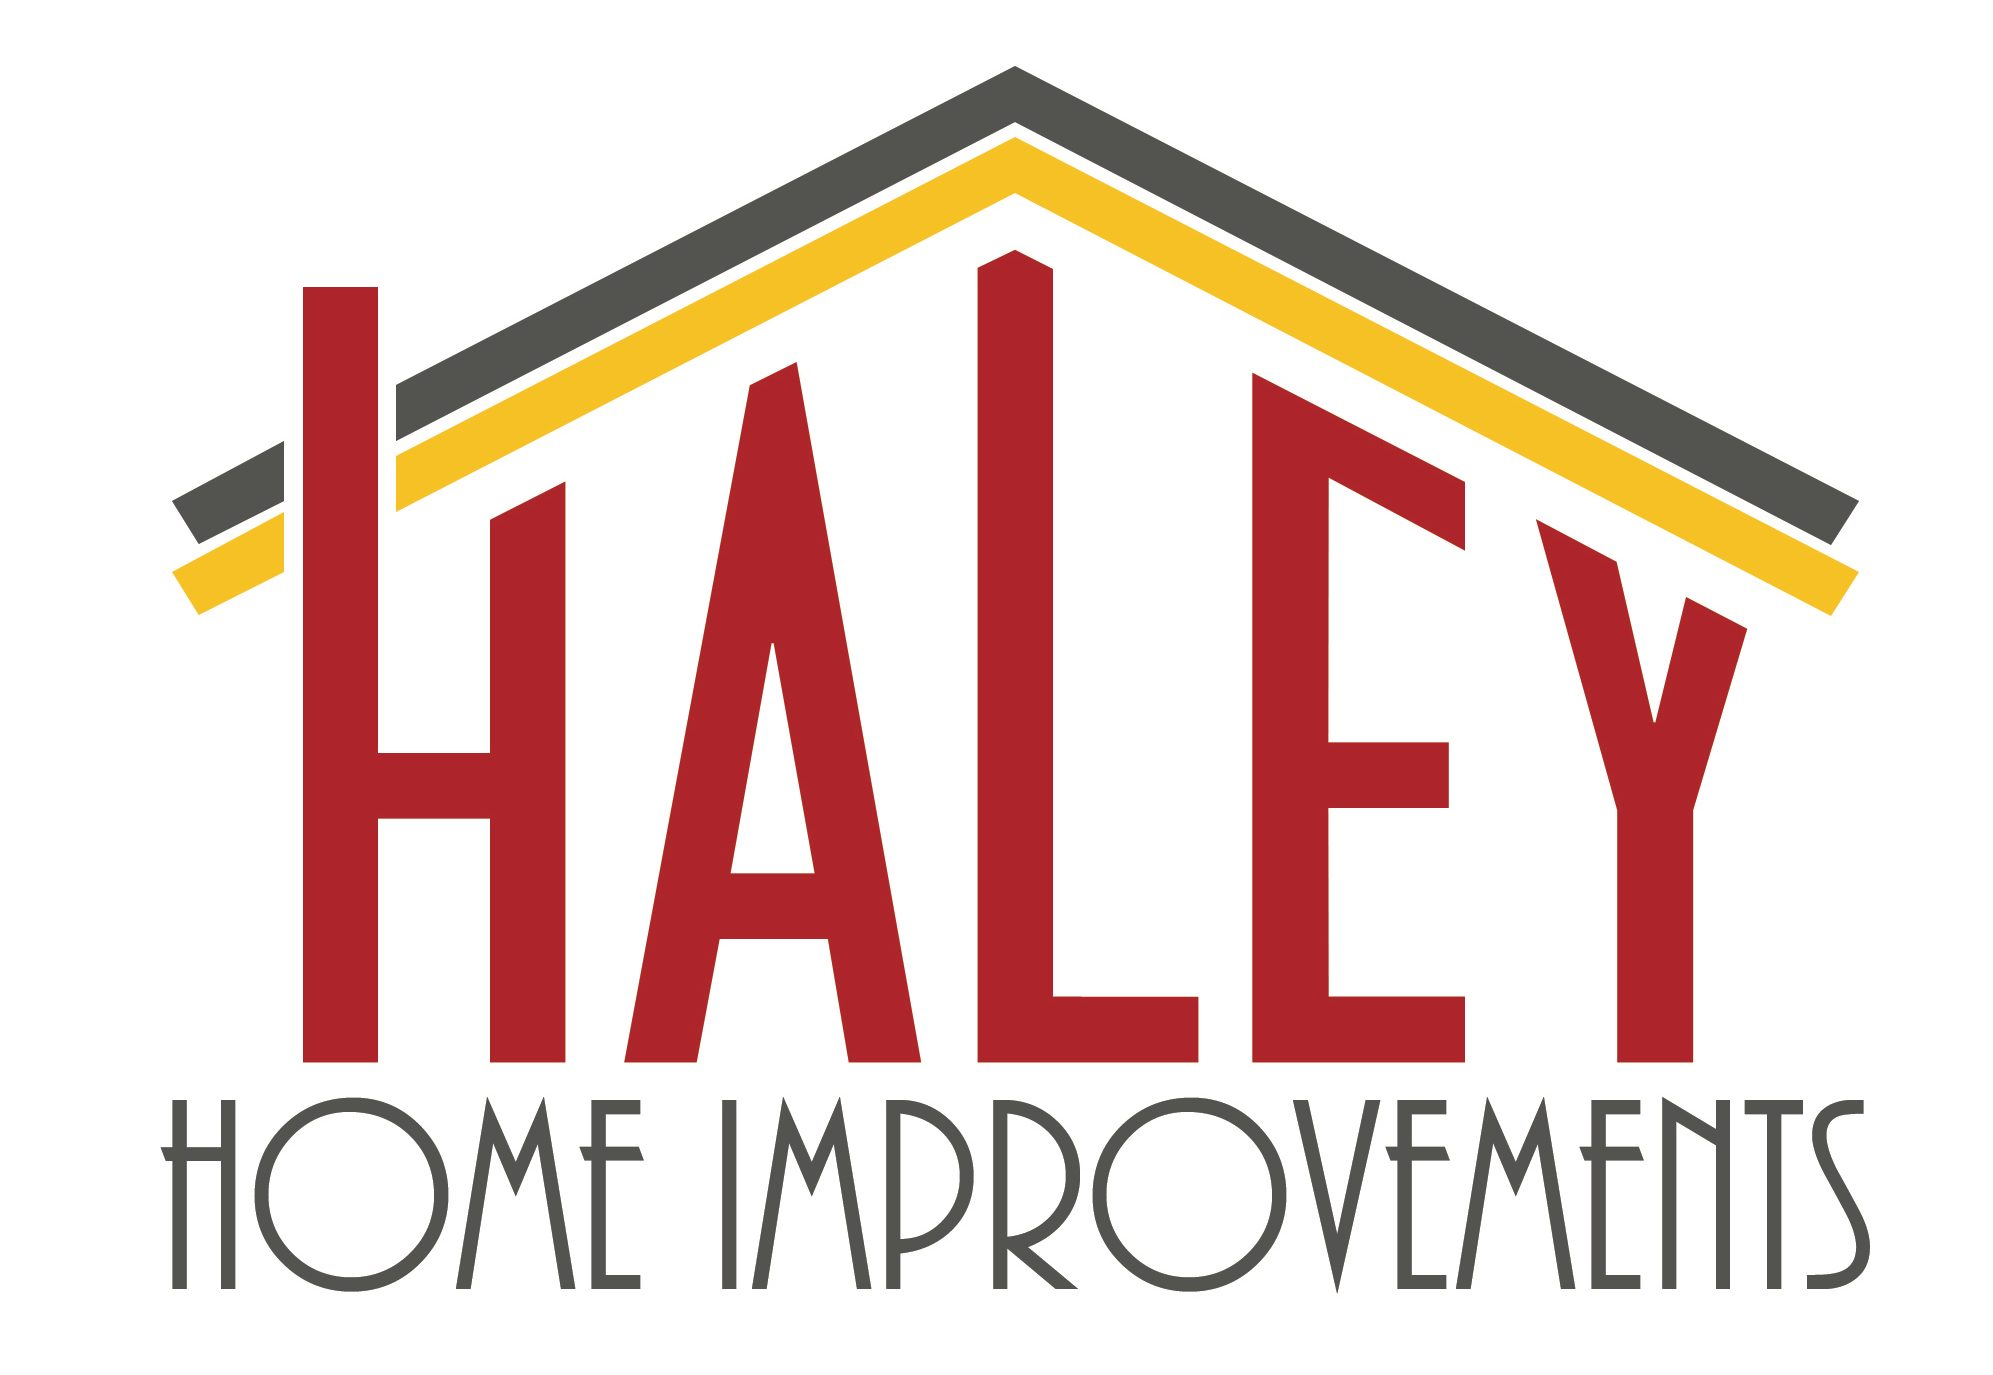 HALEY HOME IMPROVEMENTS